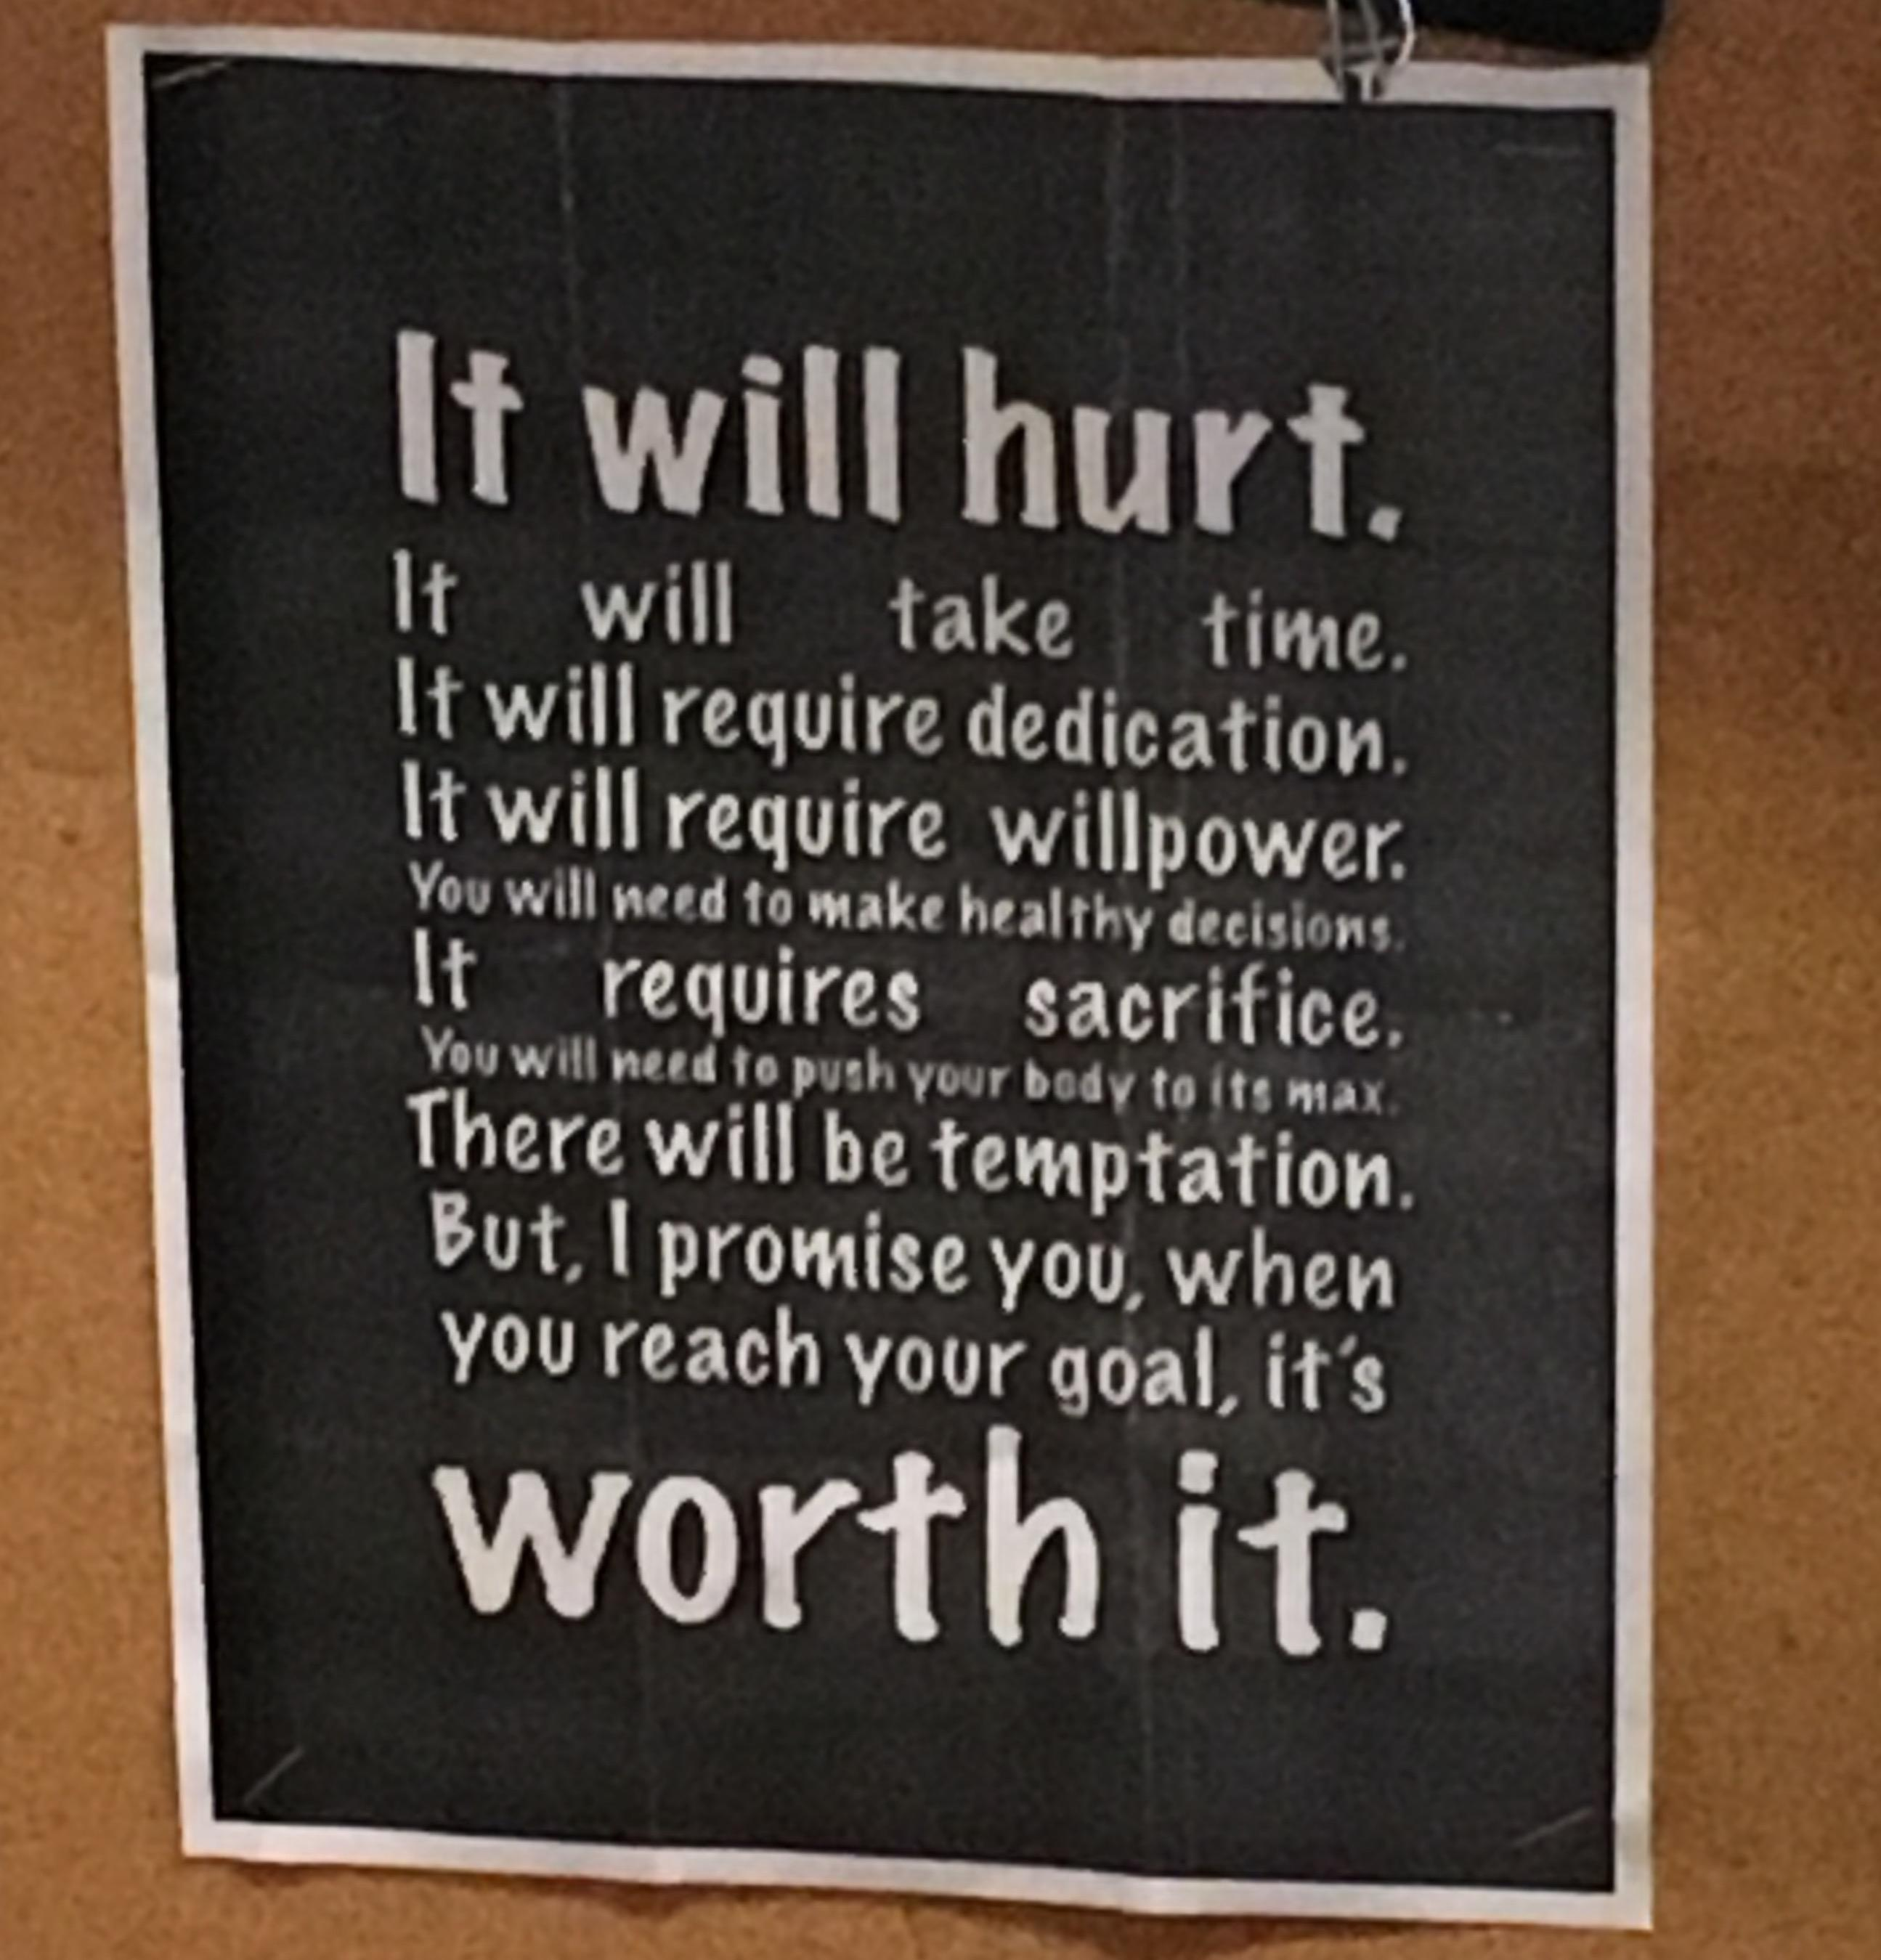 [Image]It will hurt